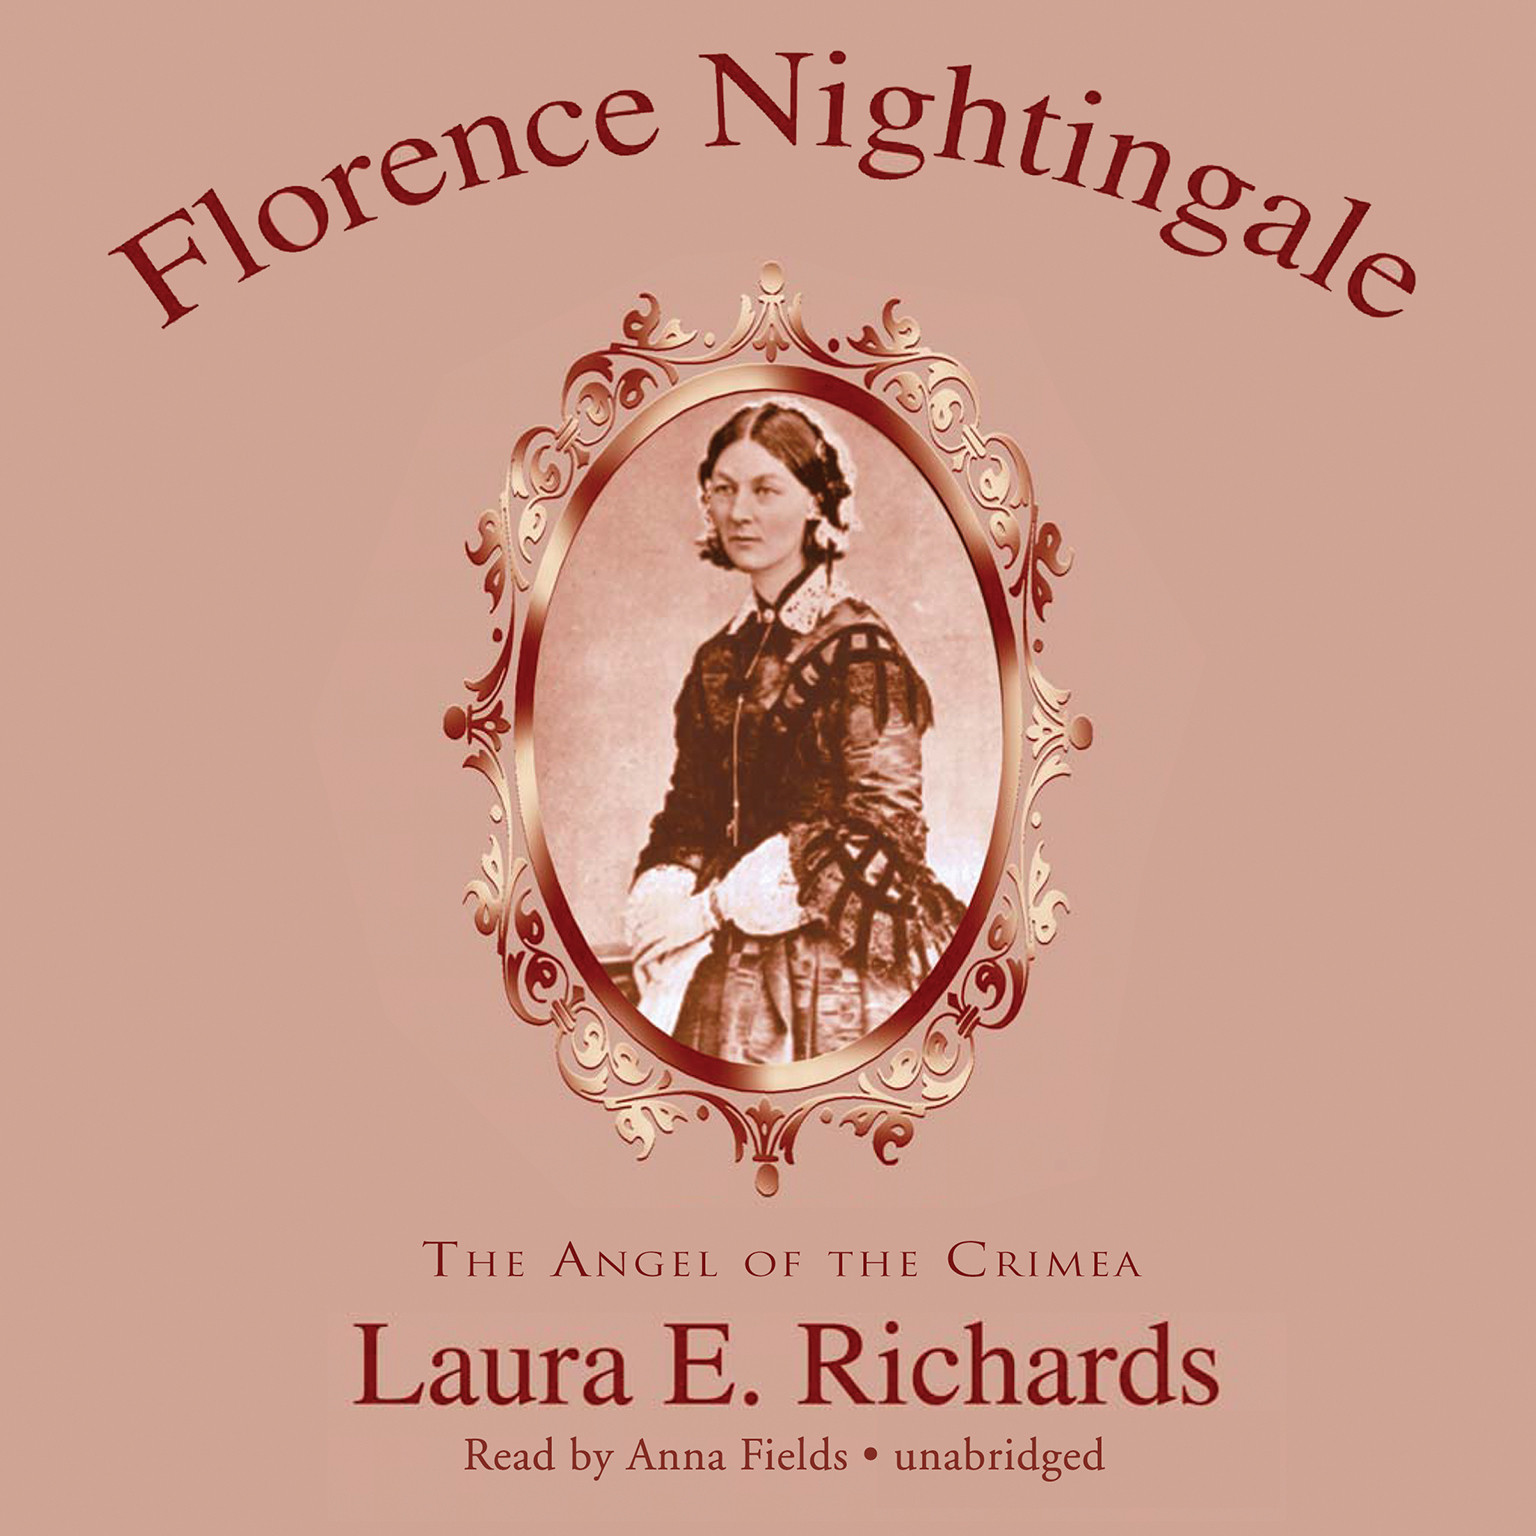 Printable Florence Nightingale: The Angel of the Crimea Audiobook Cover Art